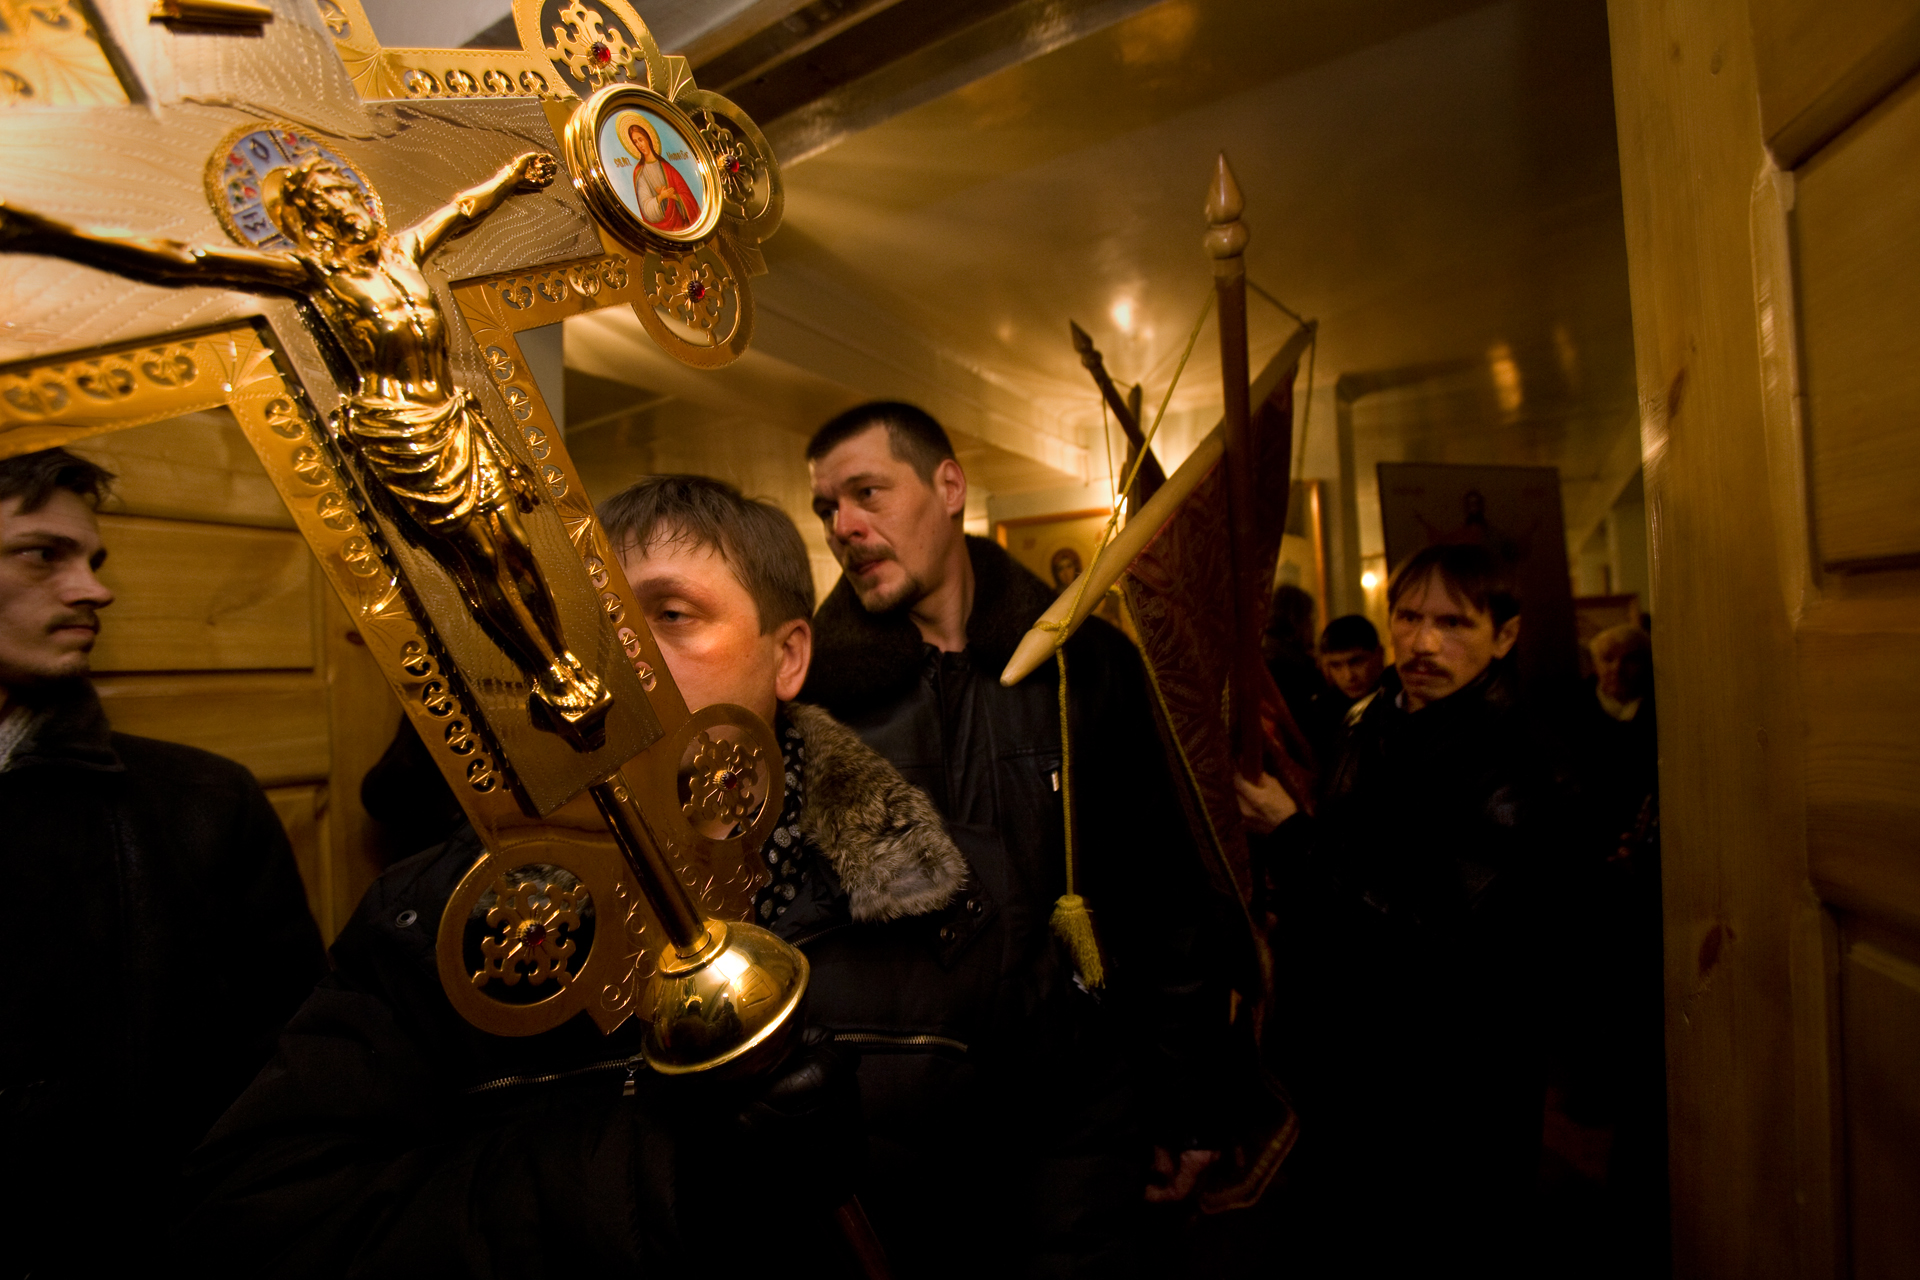 The weight of ritual intensifies on Easter Sunday as parishioners collect banners and icons for a procession before midnight Mass.  Vorkuta, Russia